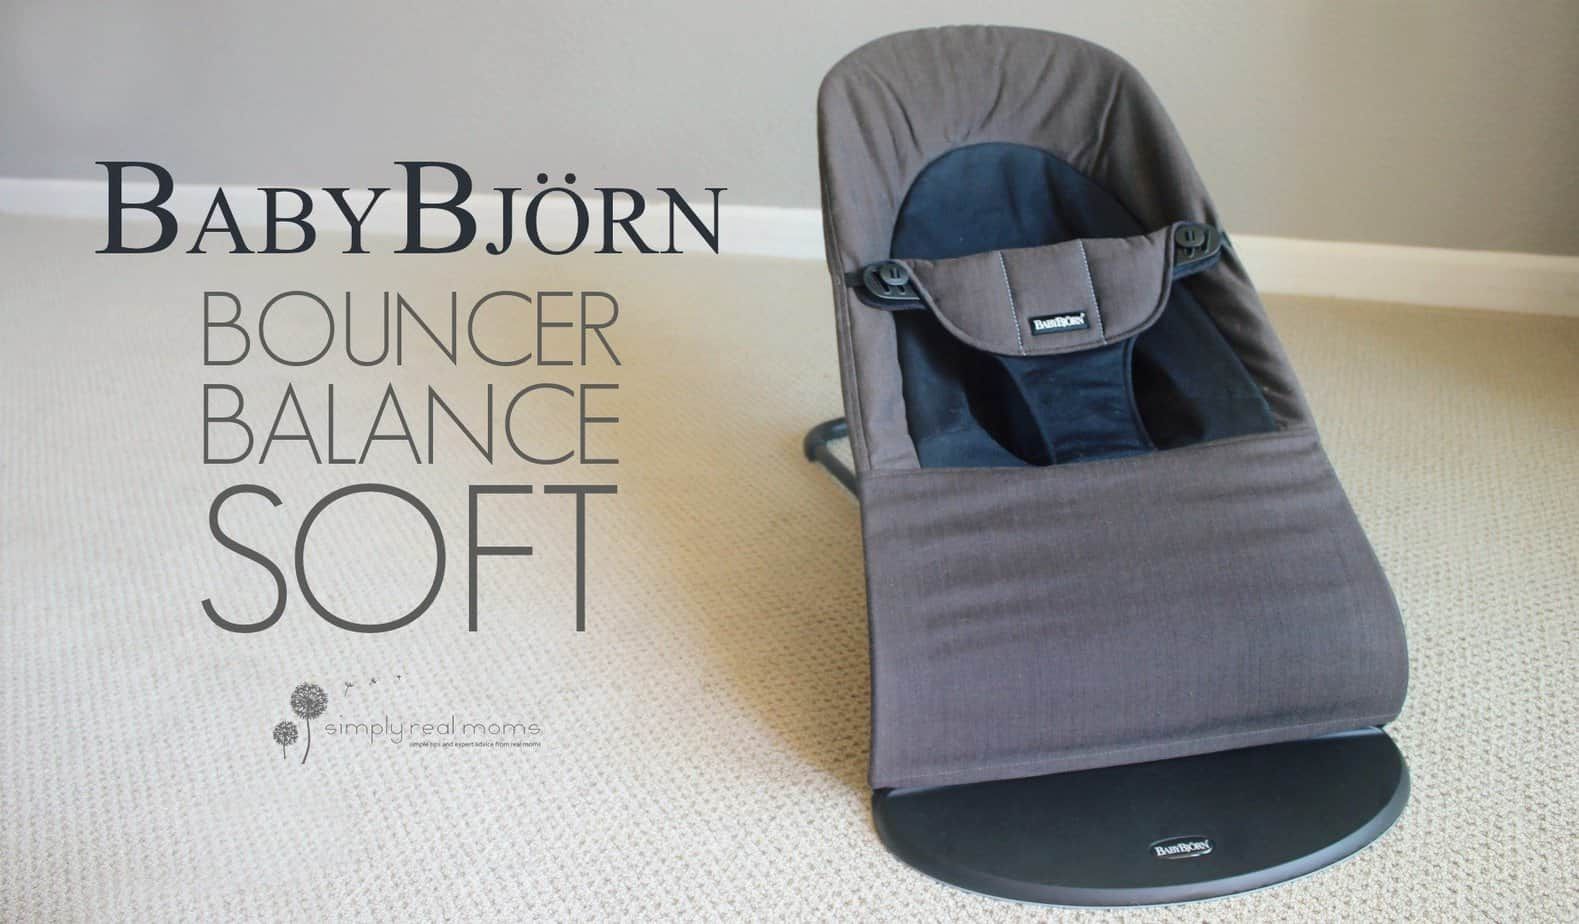 The Baby Bjorn Bouncer Balance Soft 9